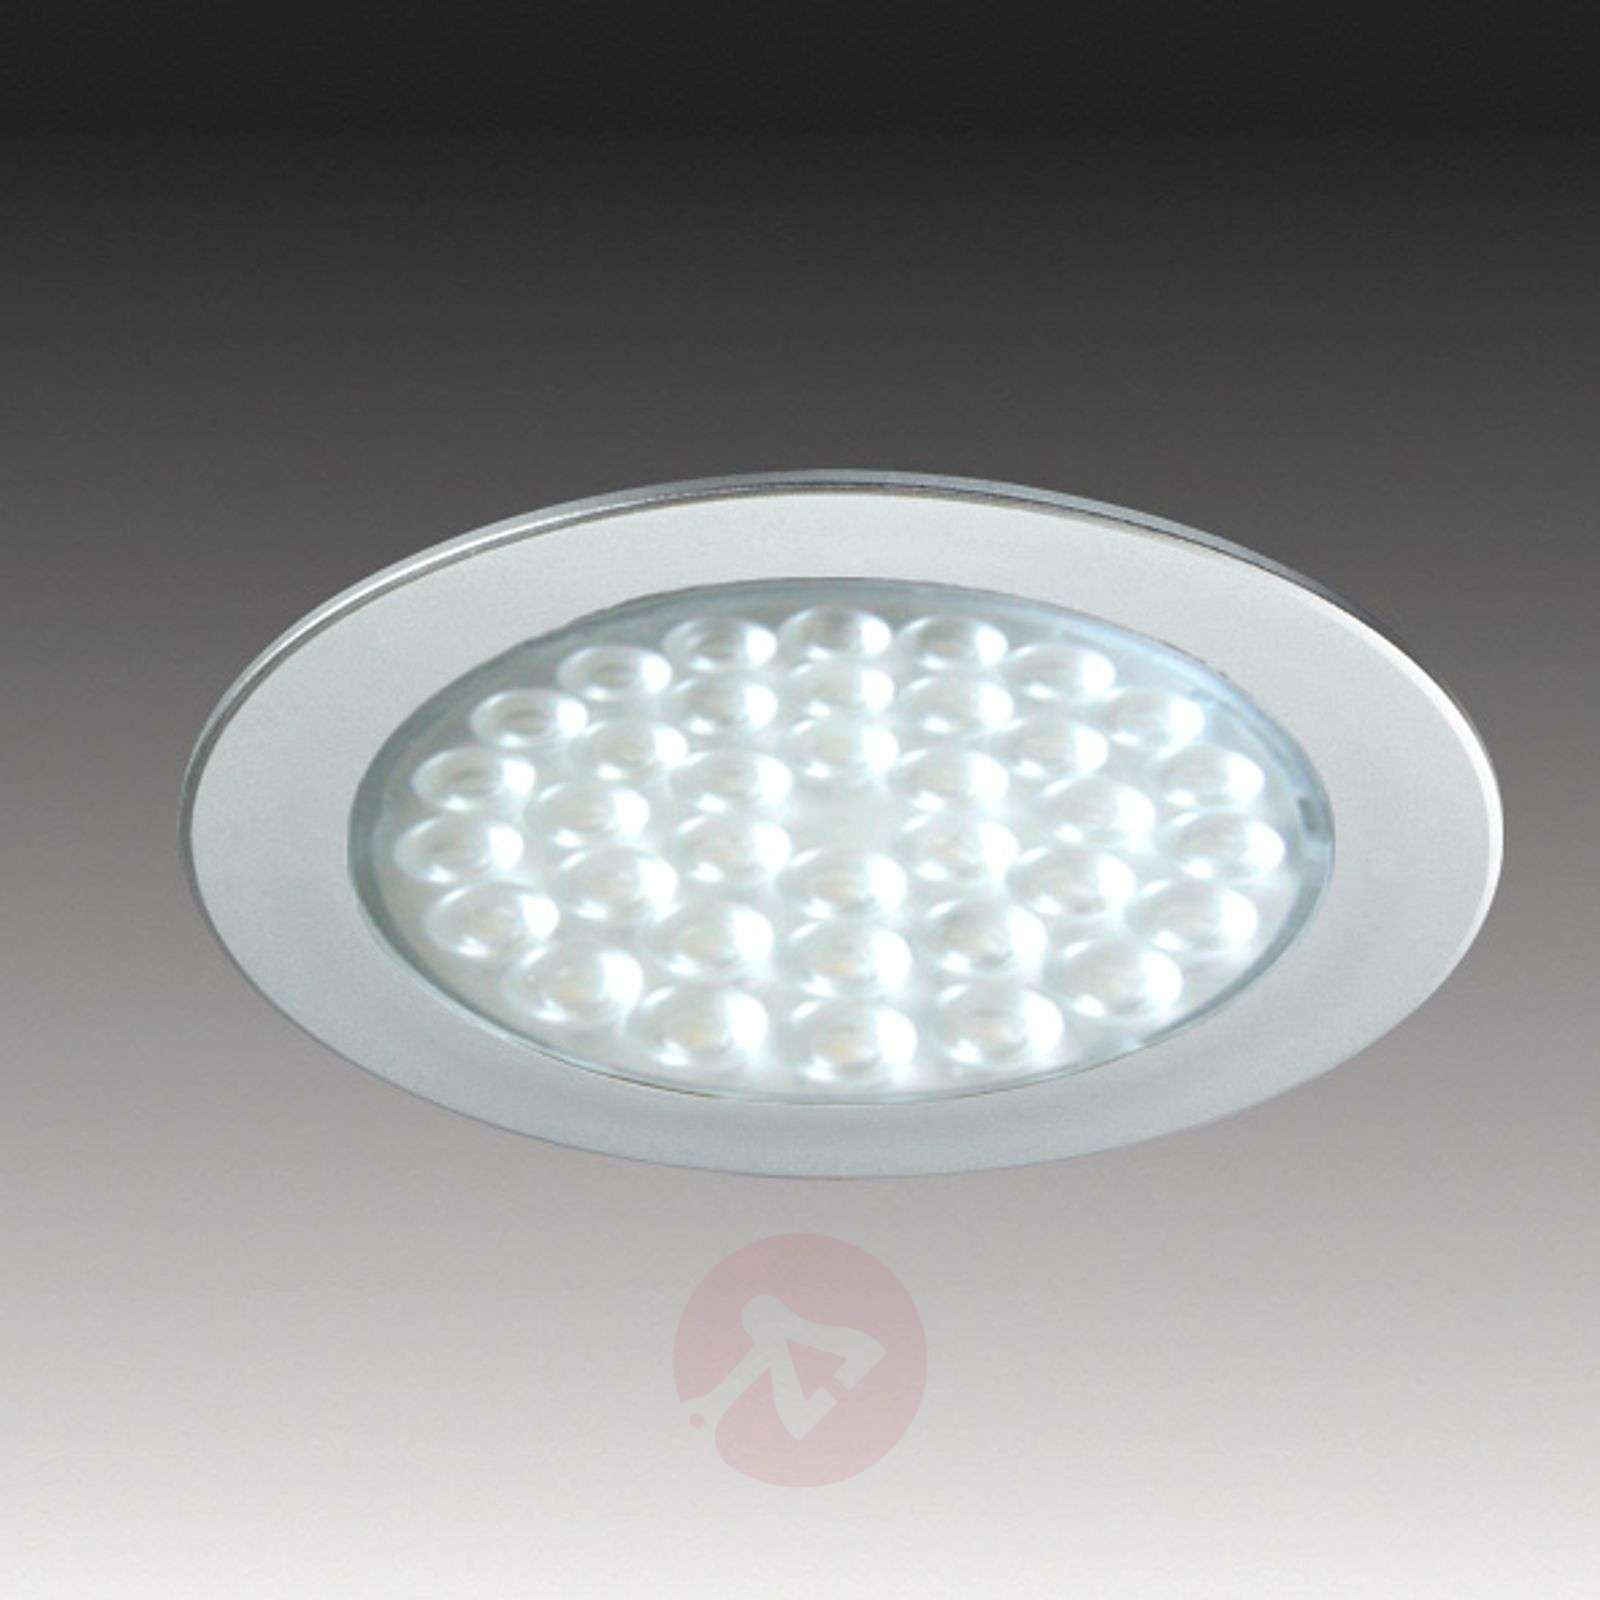 Spot encastrable R 68-LED aspect inox-4514047-01